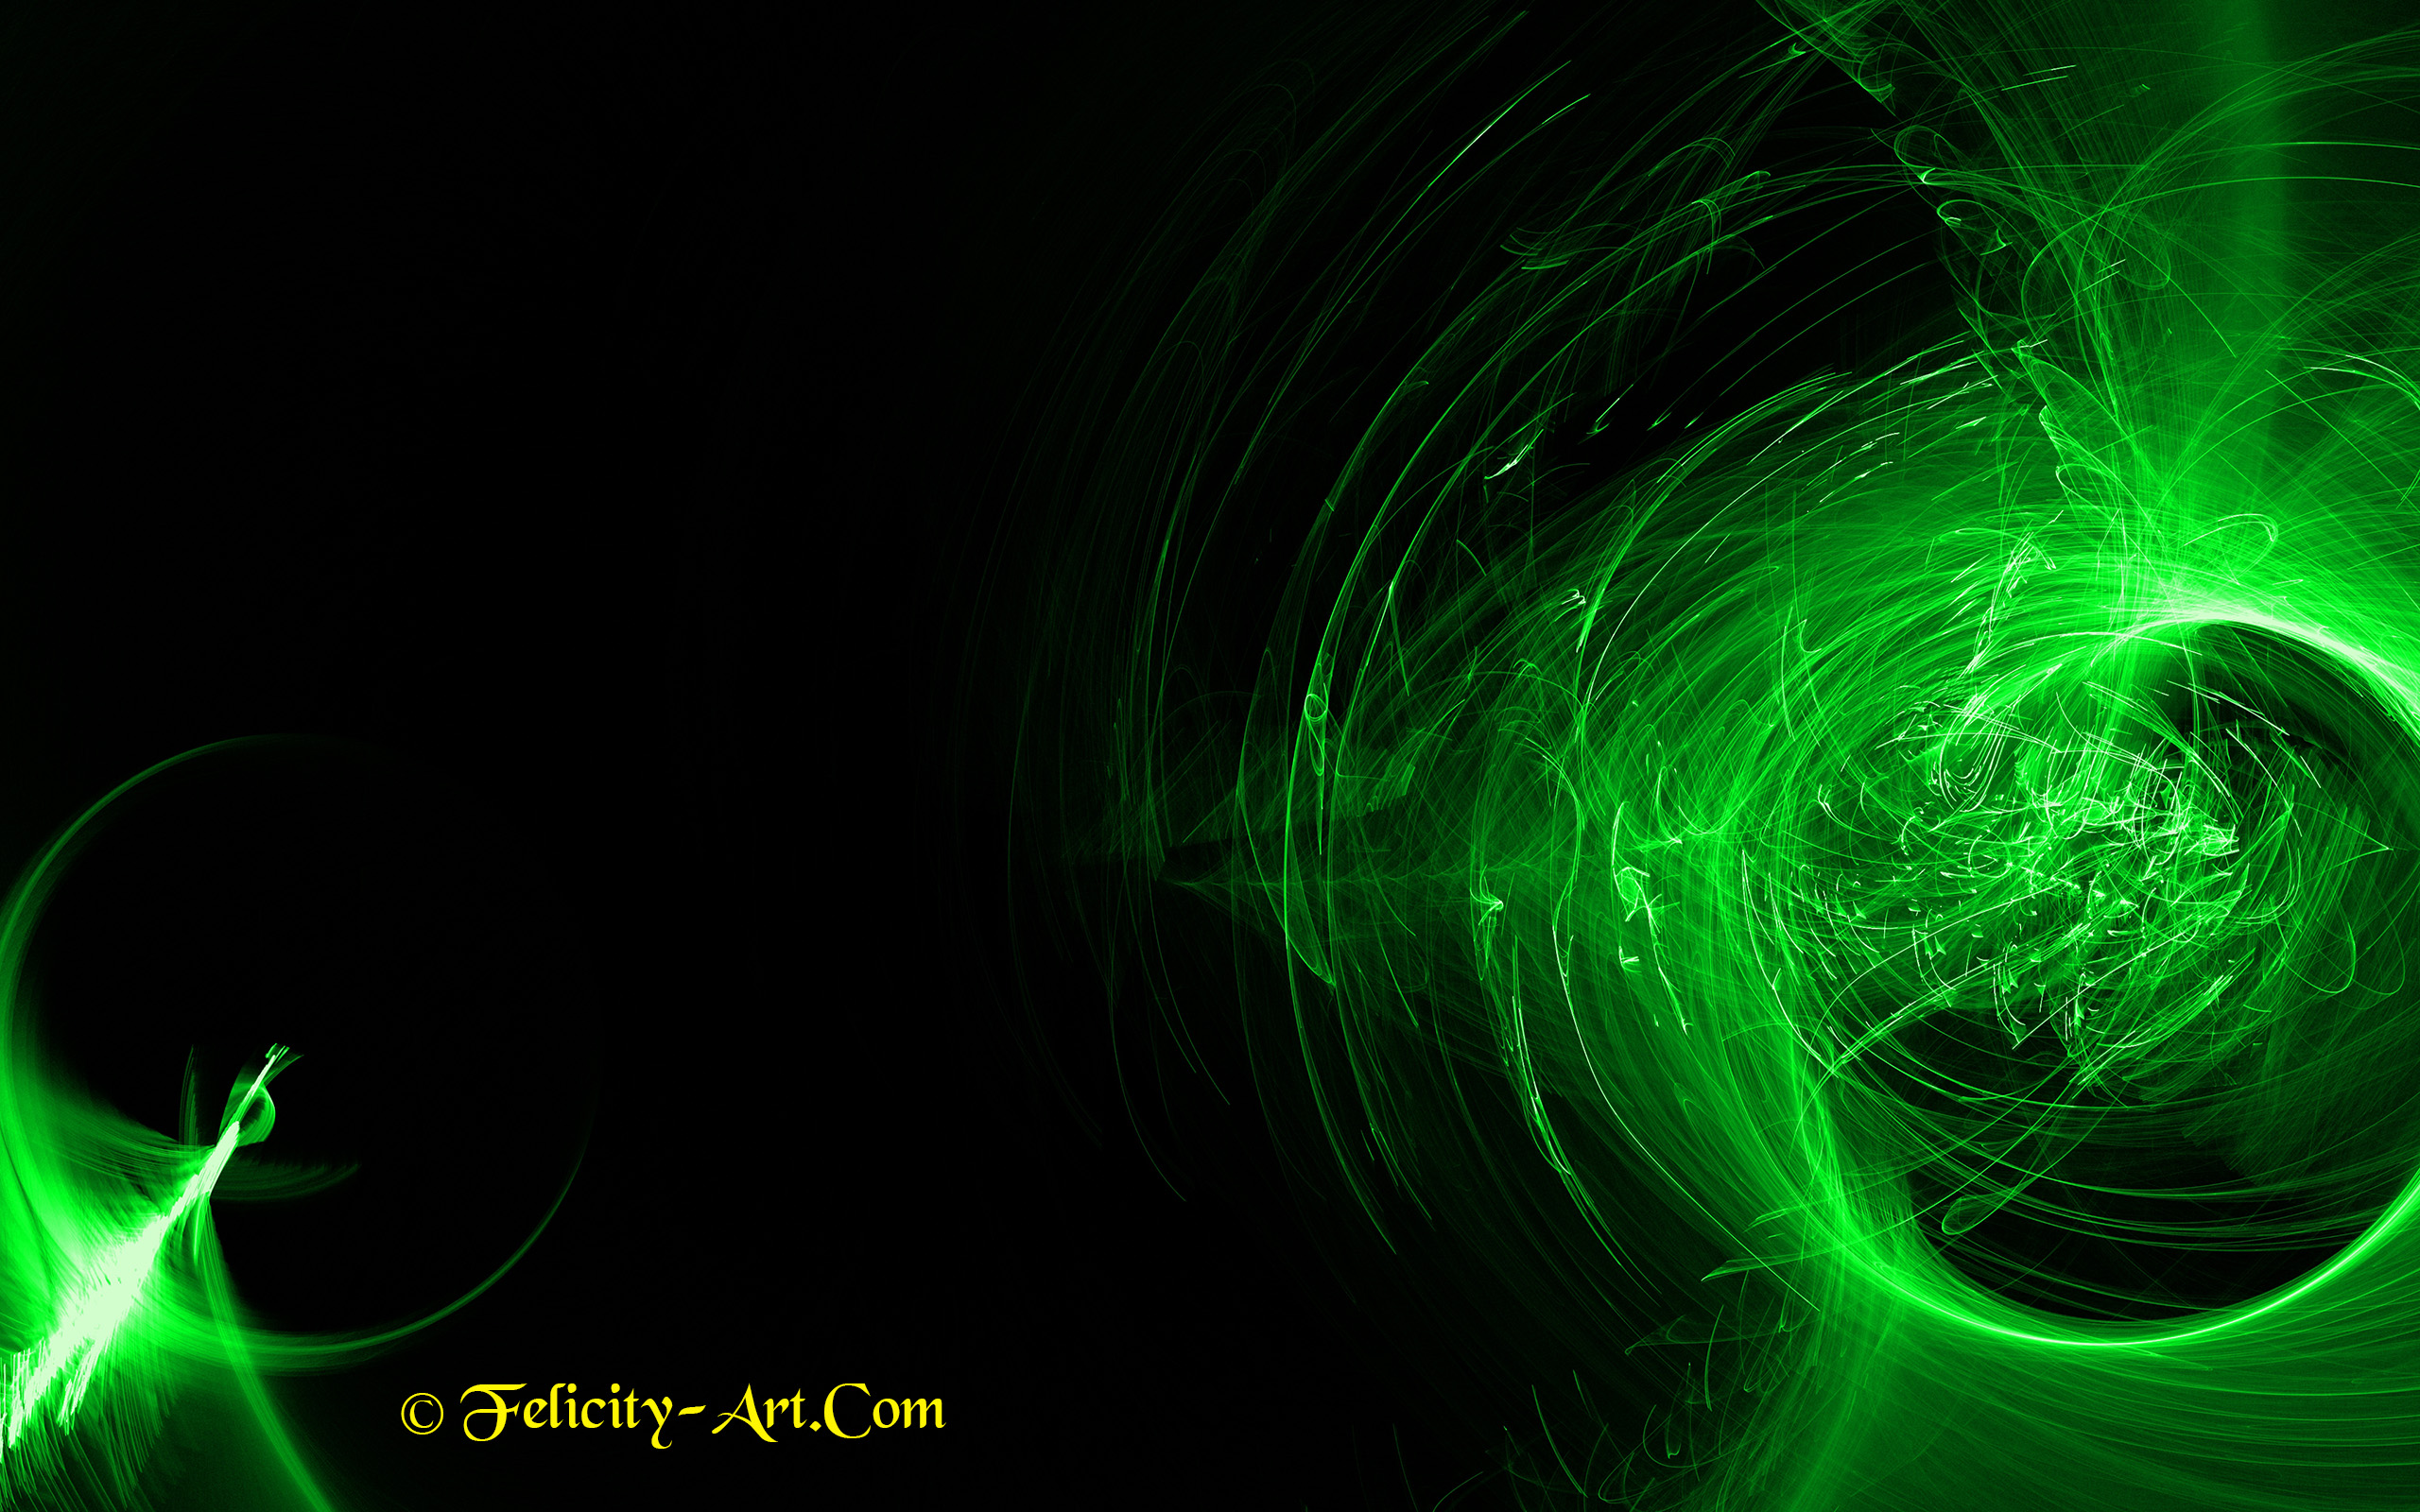 Felicity Art – Daily Image – Digital Art to be used anywhere!